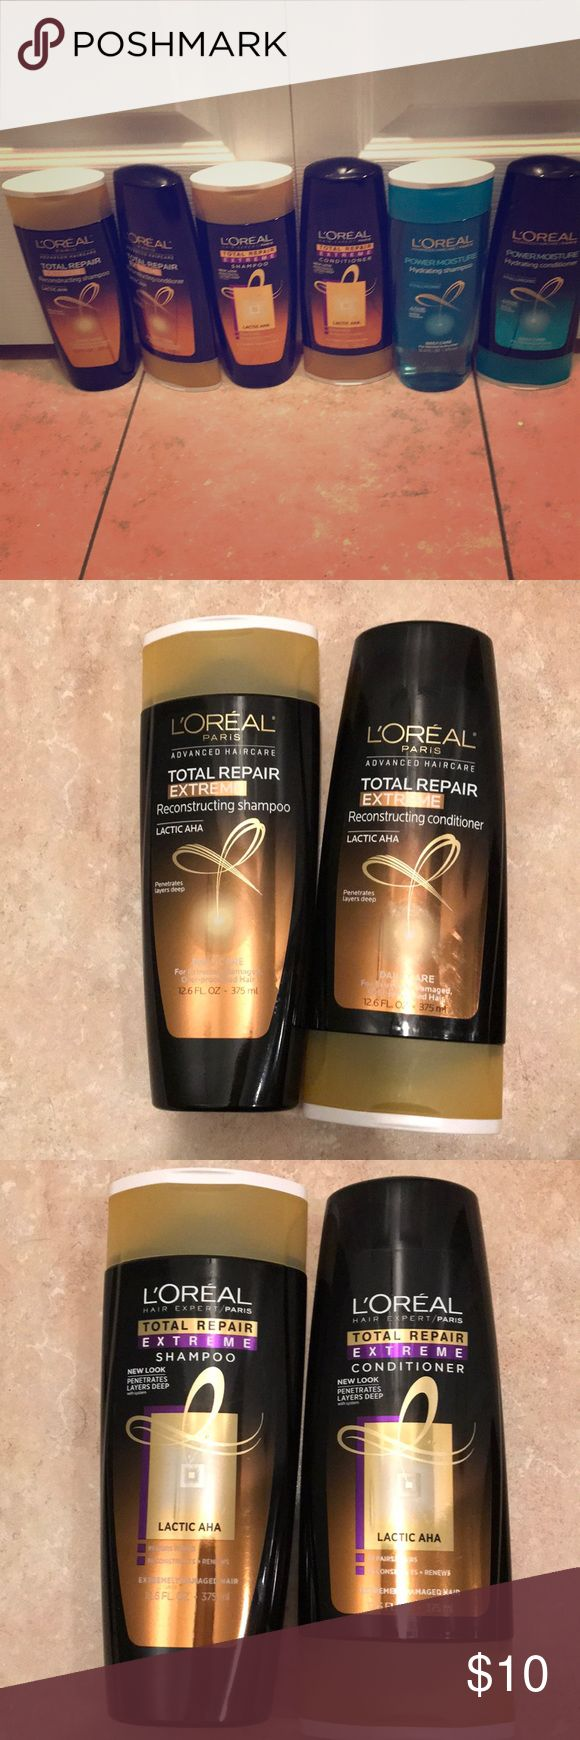 SALE!🎉 Set of 4 Loreal hair care items! 4 never before open hair care items! 4 extreme repair (2 shampoo & 2 conditioner)! L'Oreal Accessories Hair Accessories